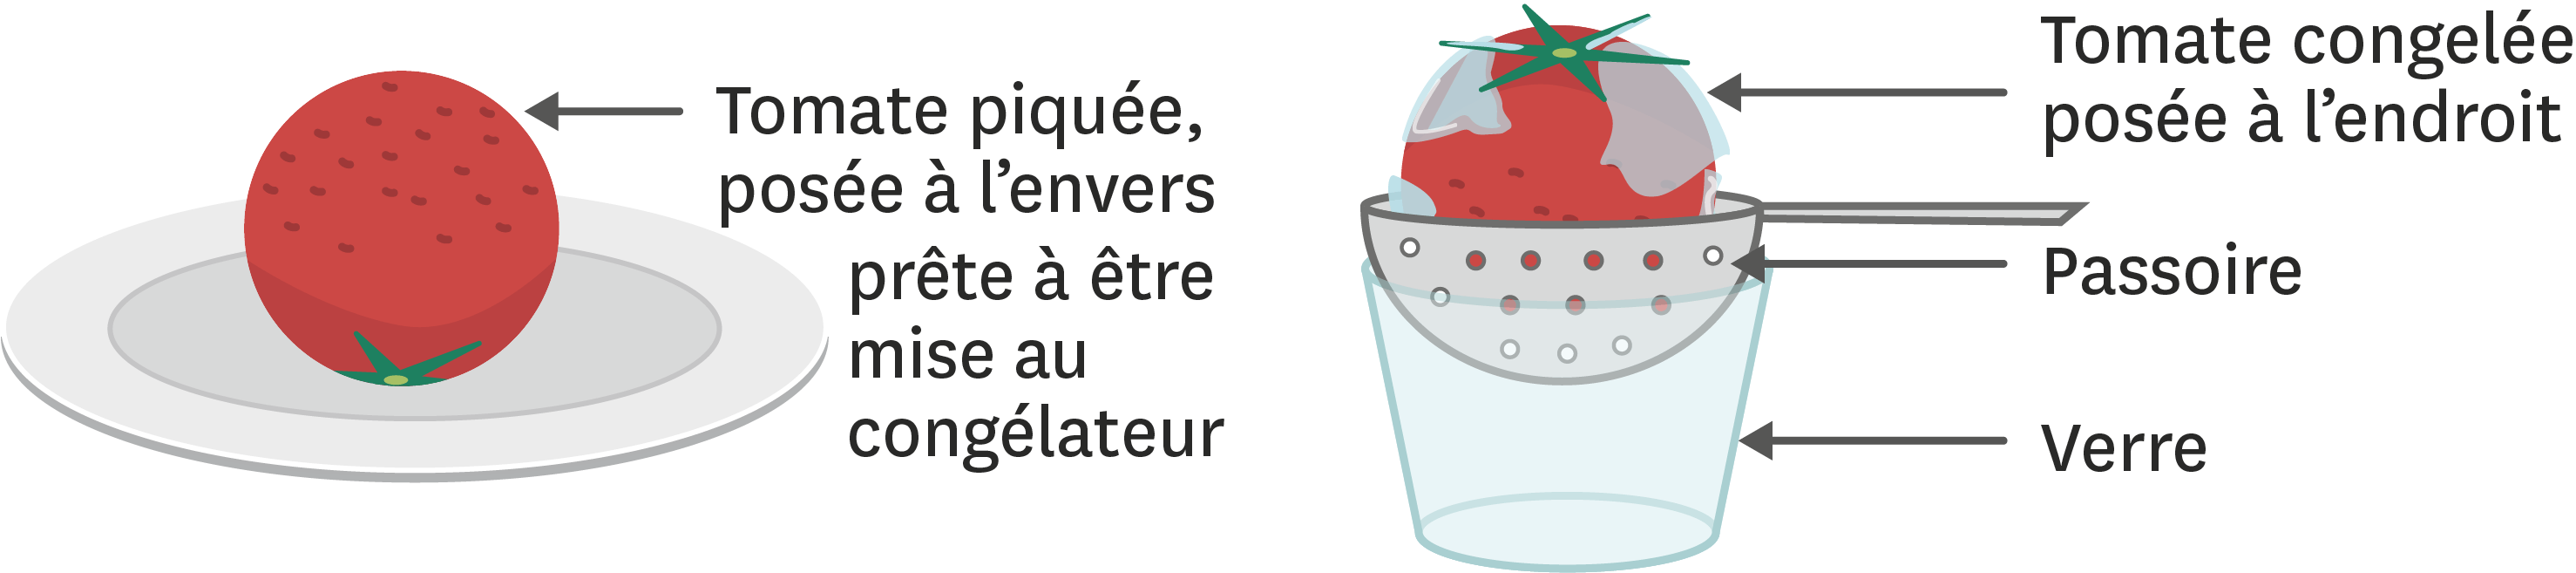 <stamp theme='pc-green1'>Doc. 1</stamp> Faire du jus de tomate incolore.